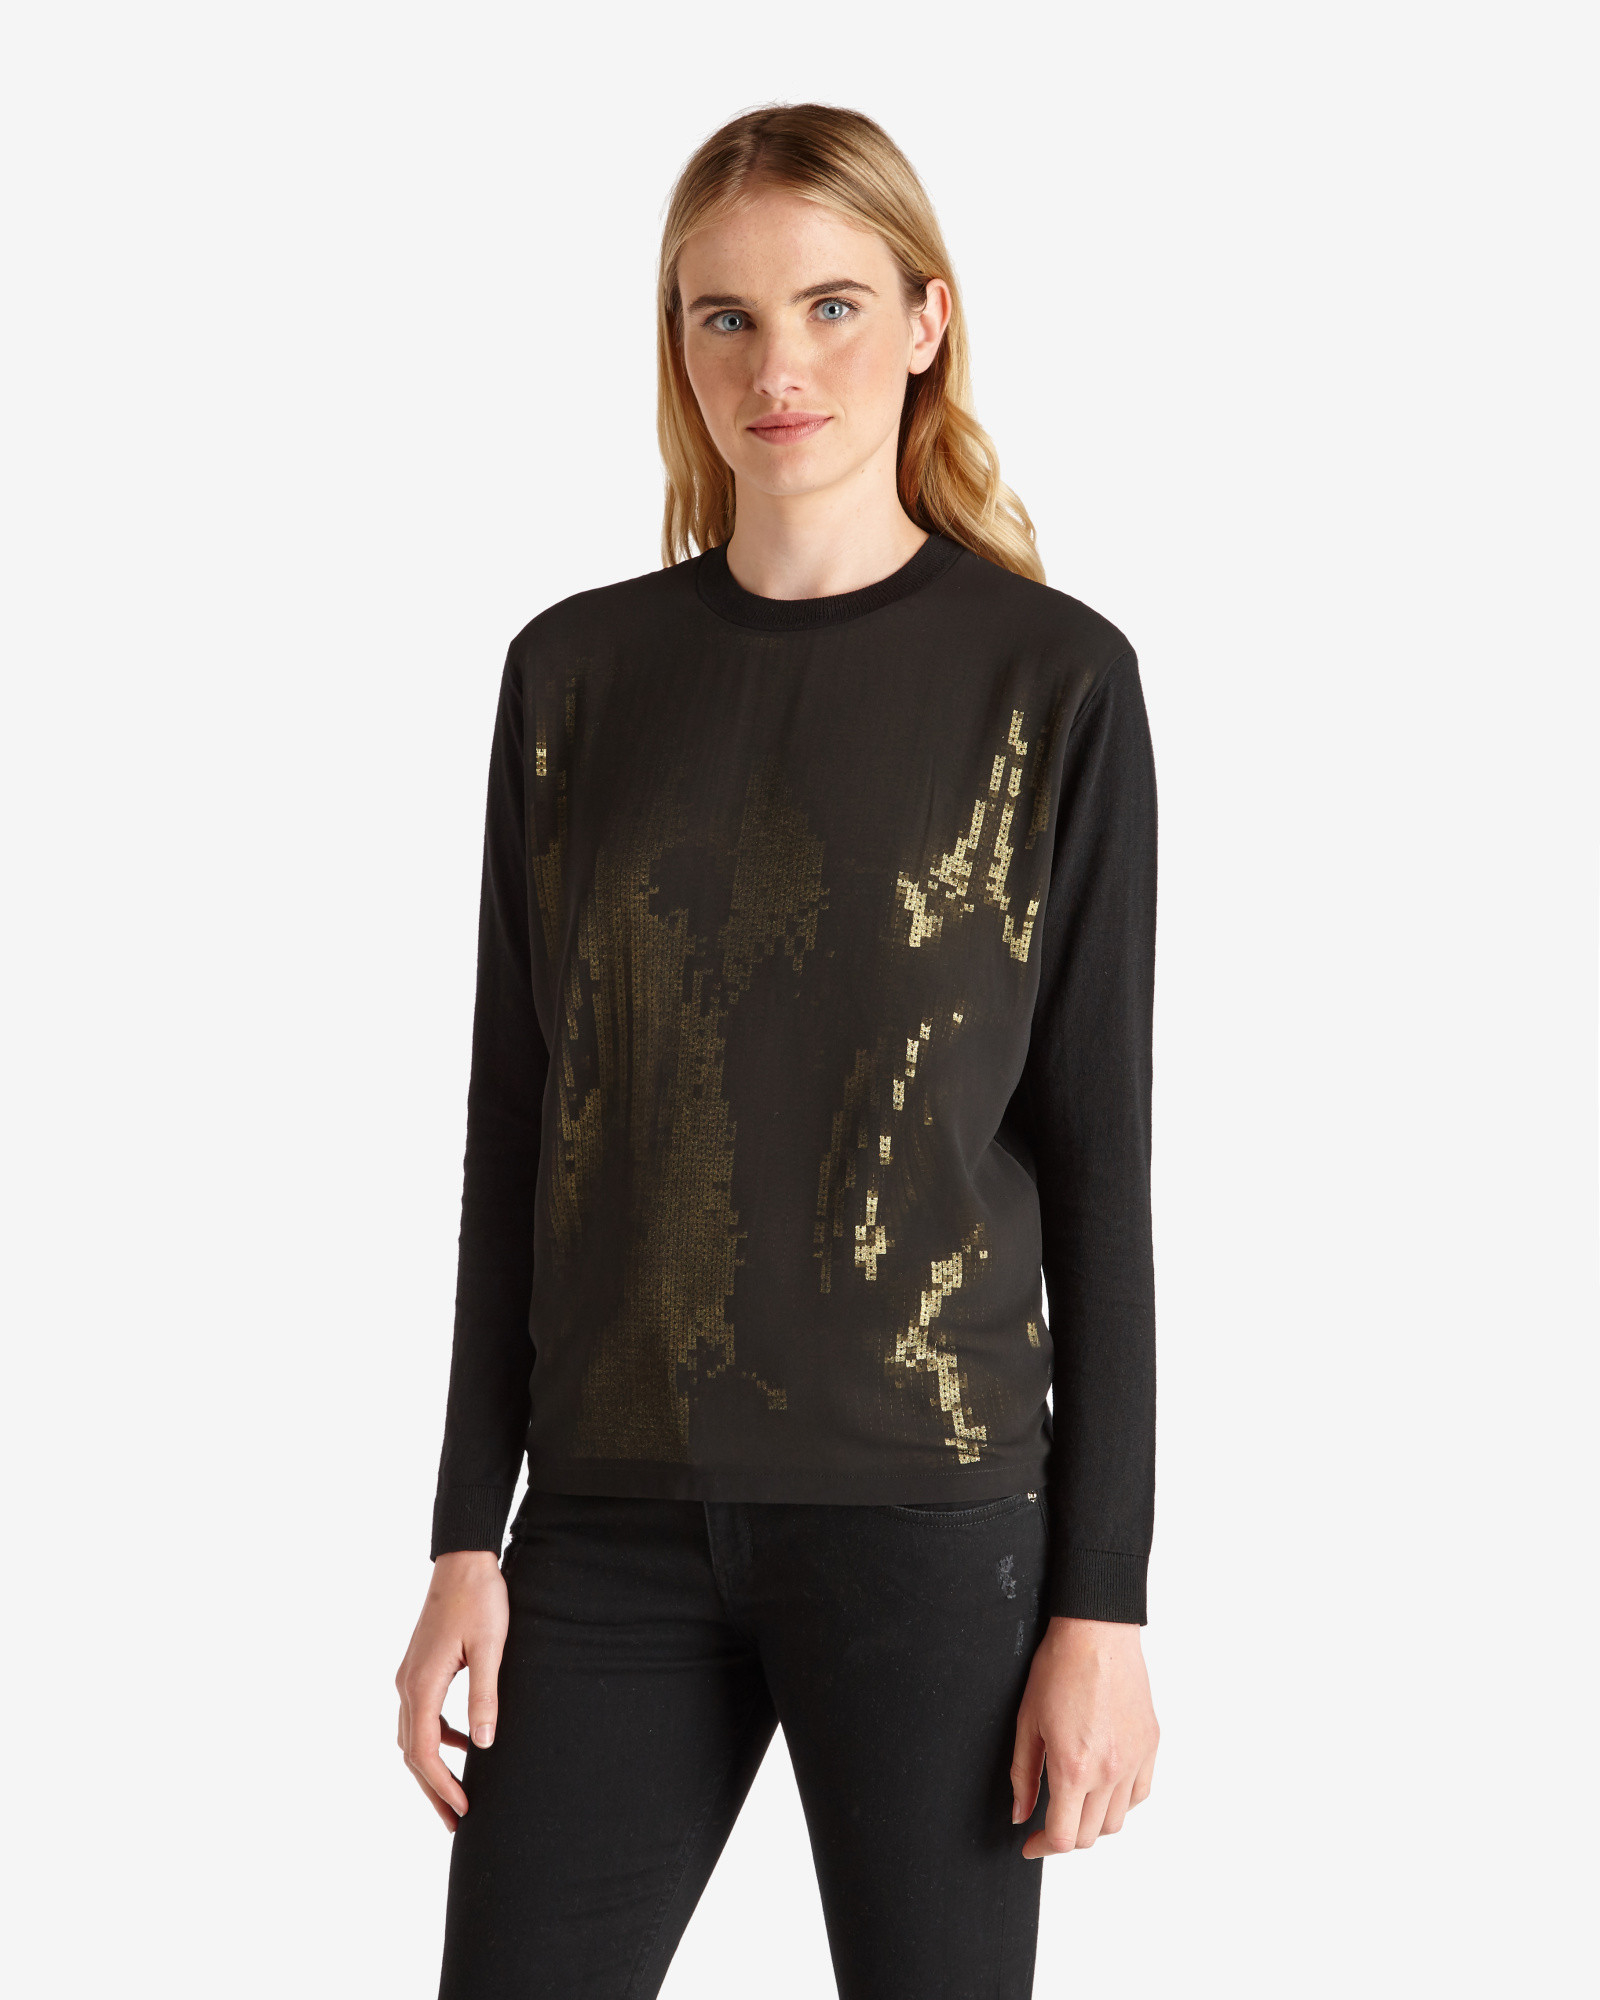 744122d6d4bb8 Ted Baker Sequin Sweater in Black - Lyst